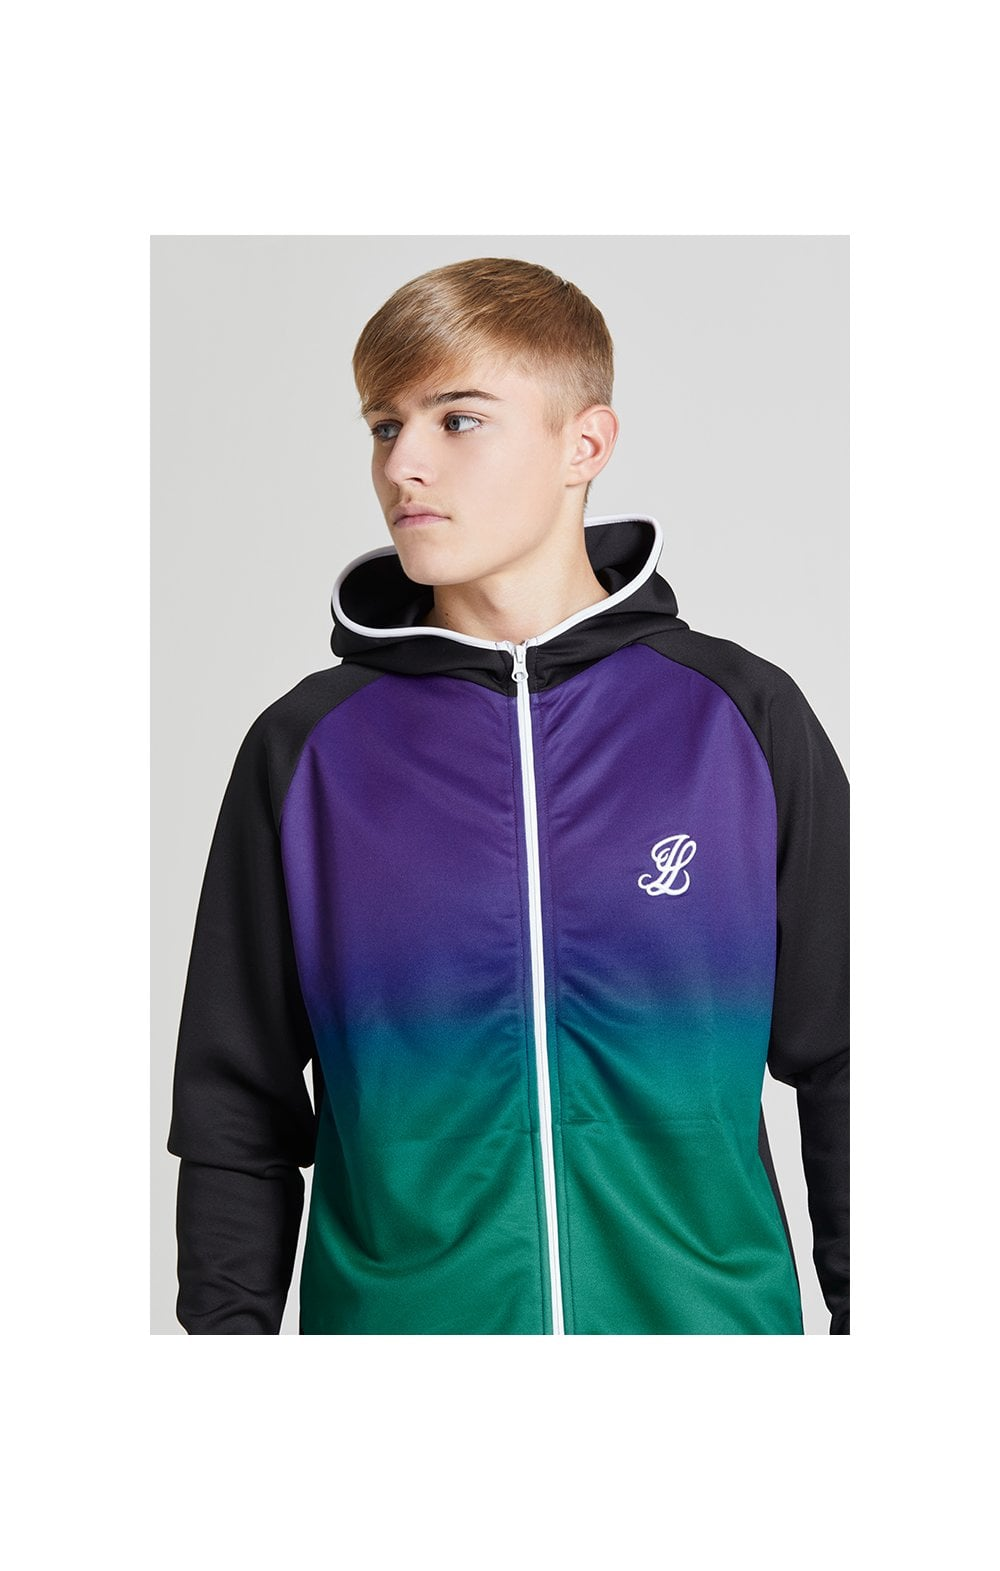 Illusive London Fade Athlete Hoodie – Black, Purple & Teal Green